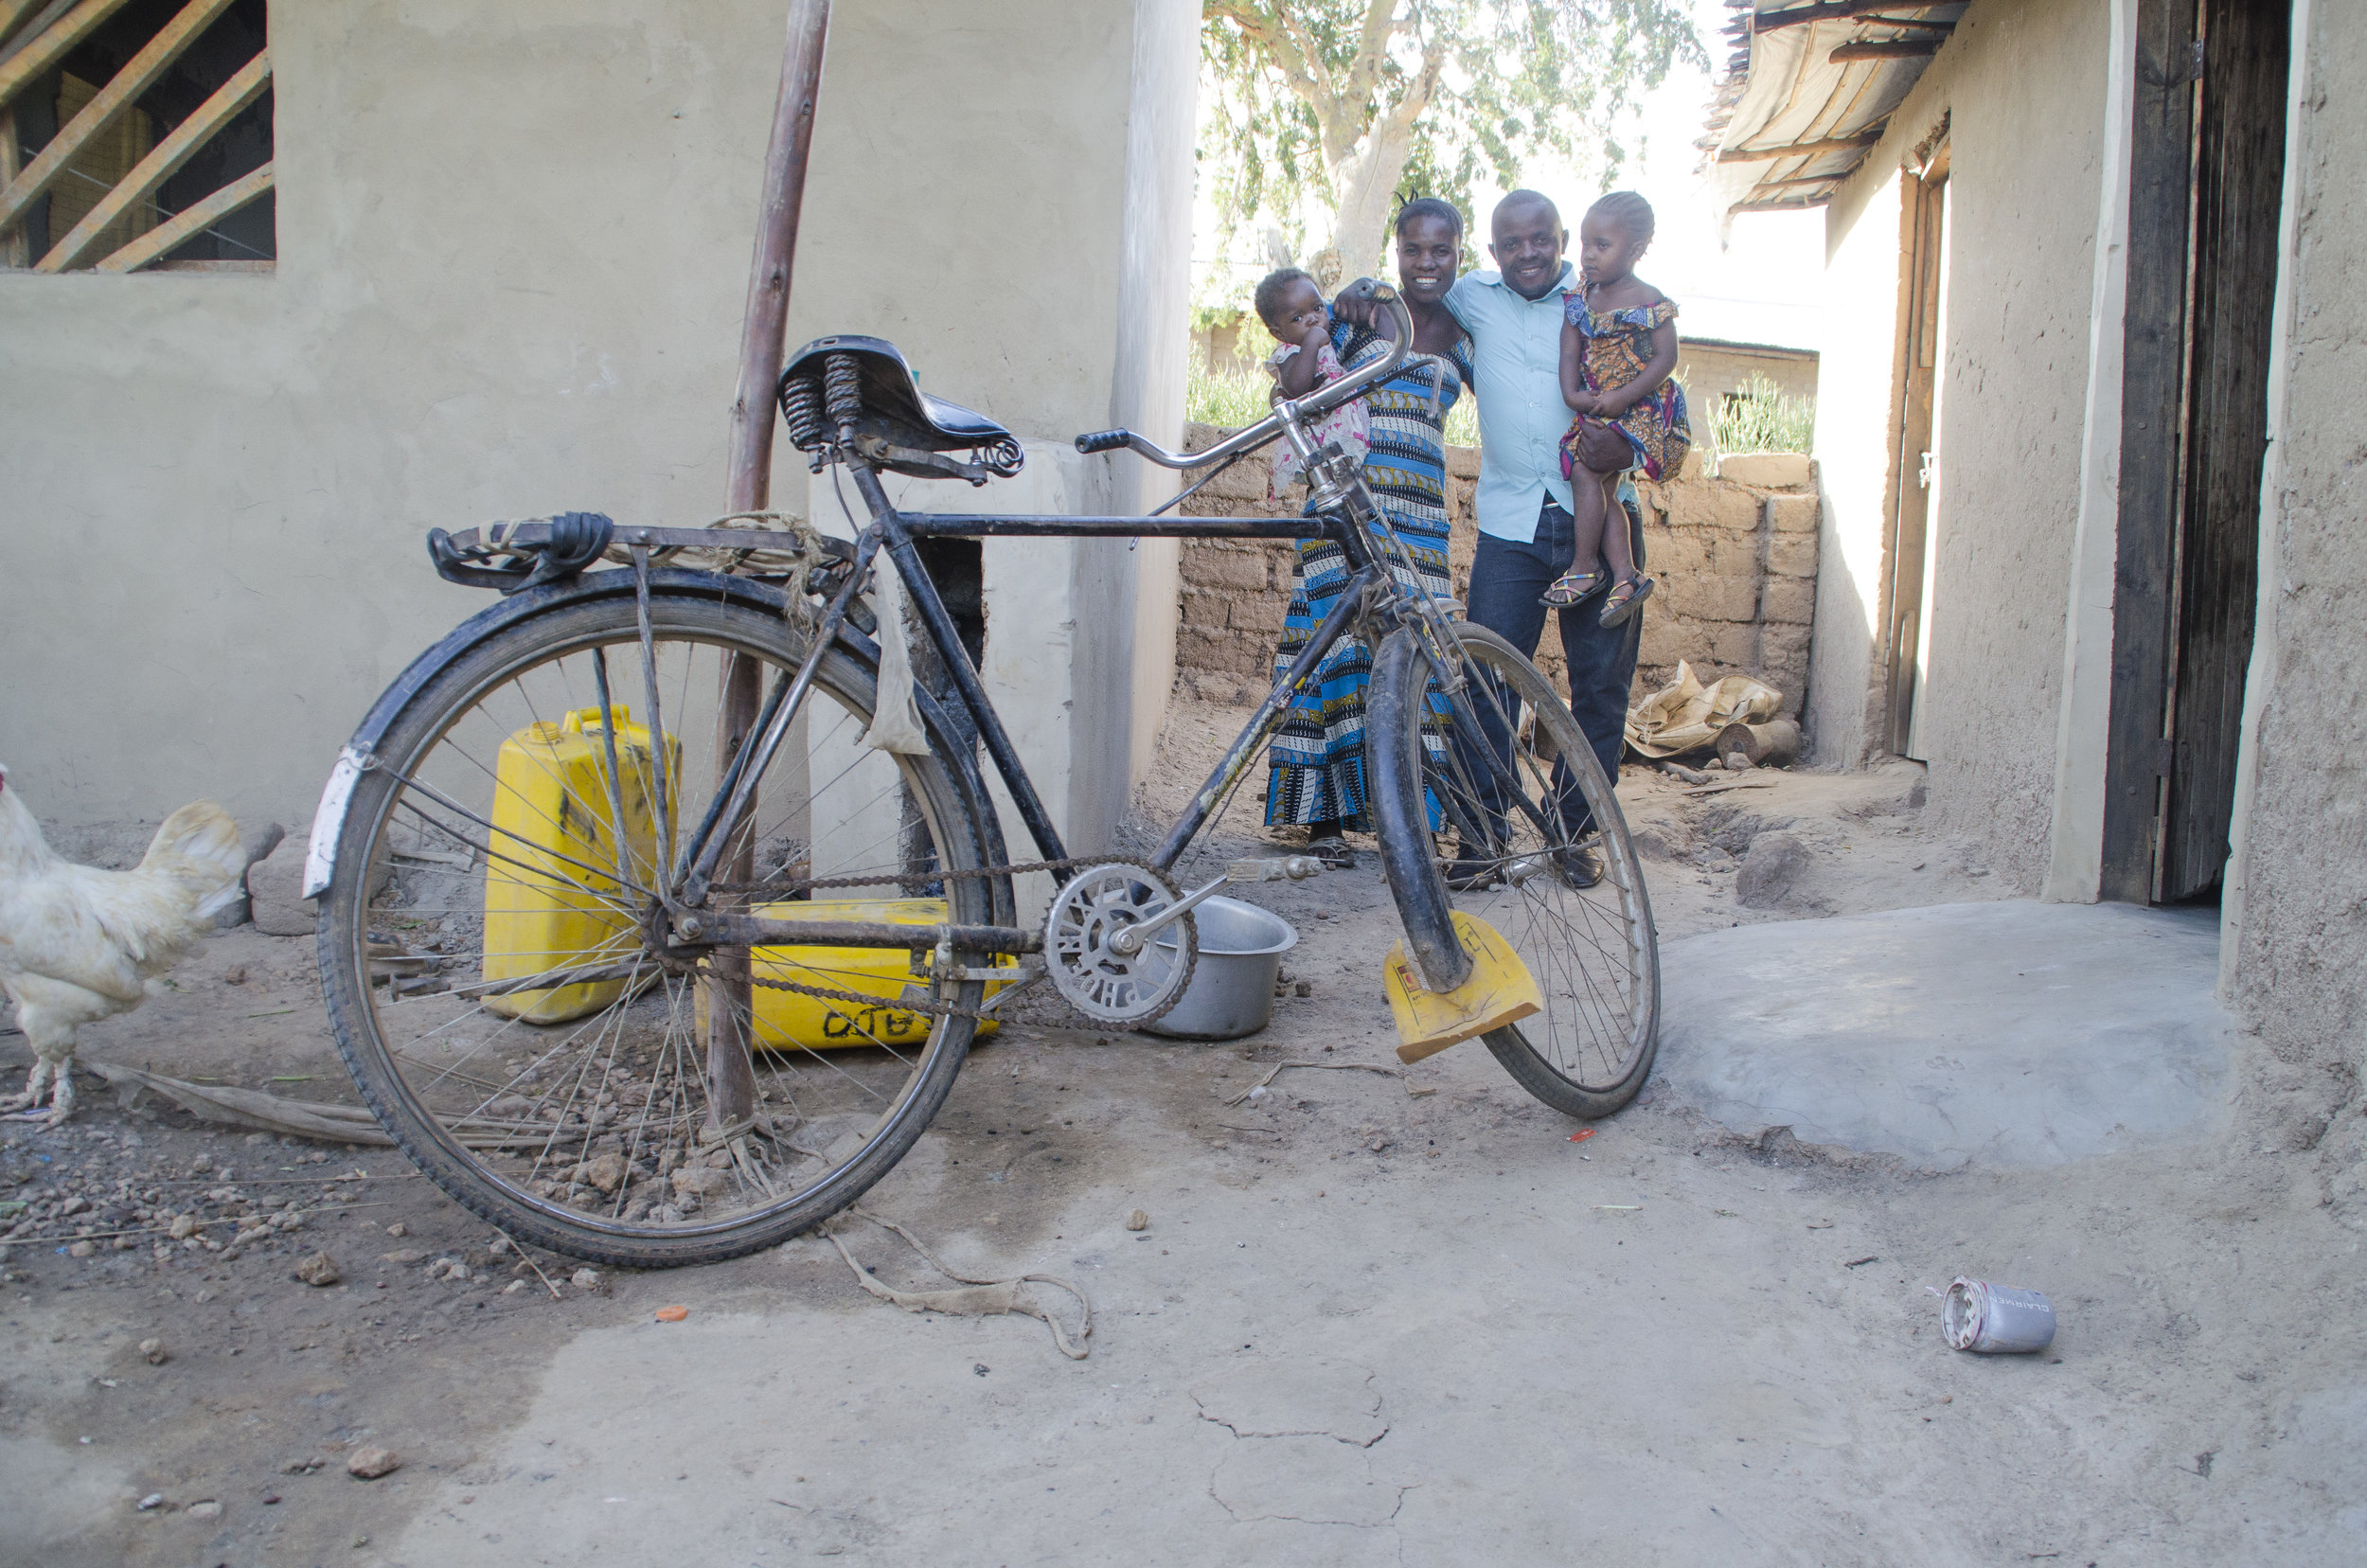 The bike that Kado first purchased to fetch water to sell - it became a great source of income for his family.